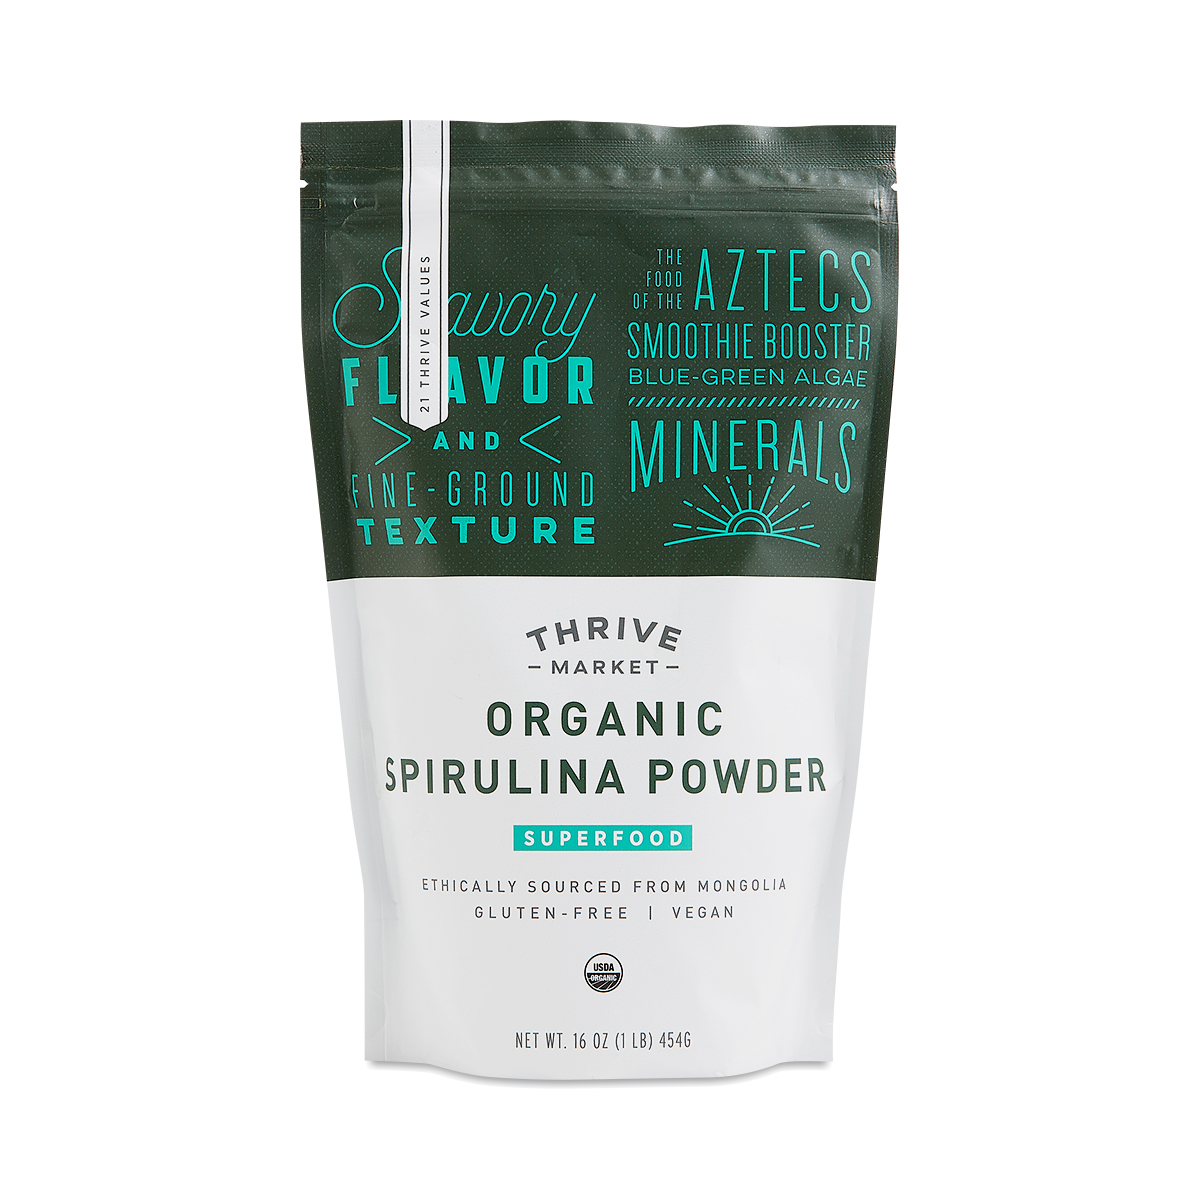 SUPPLEMENTS FOR INFLAMMATION-improve your health today! - spirulina powder from thrive